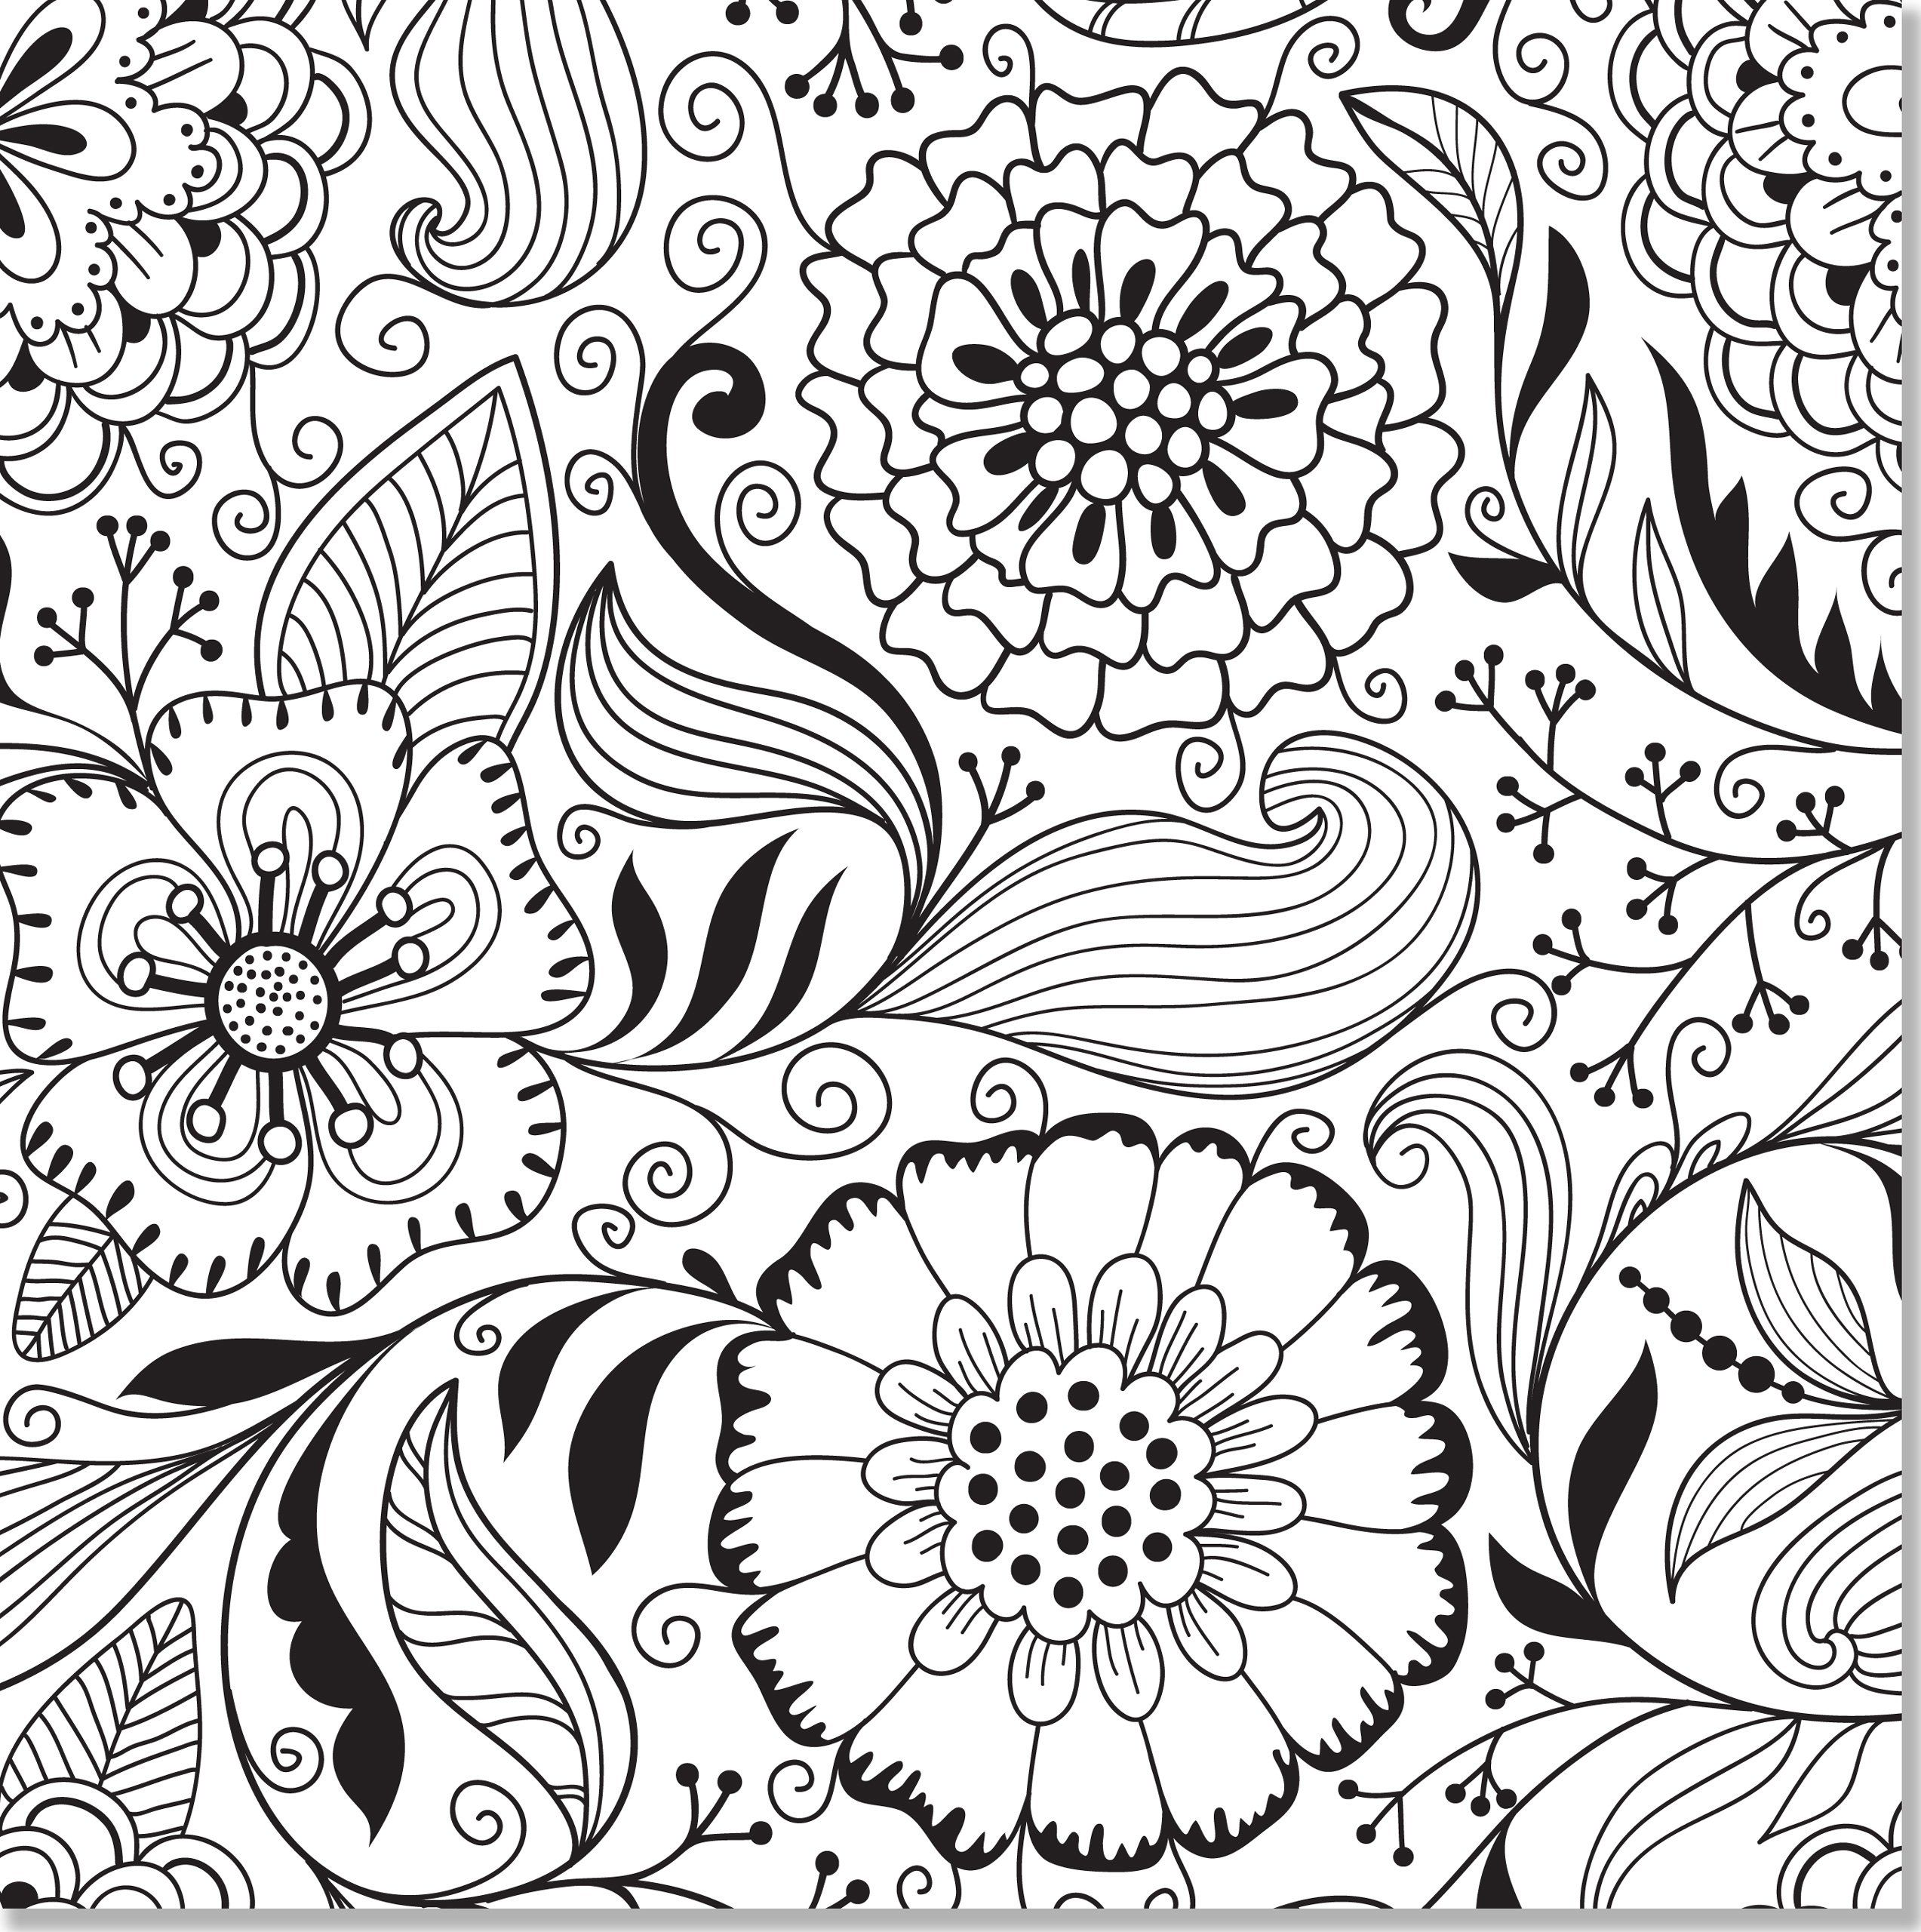 Stress relief coloring sheets free - Butterfly And Flower Coloring Pages For Adults Free Printable